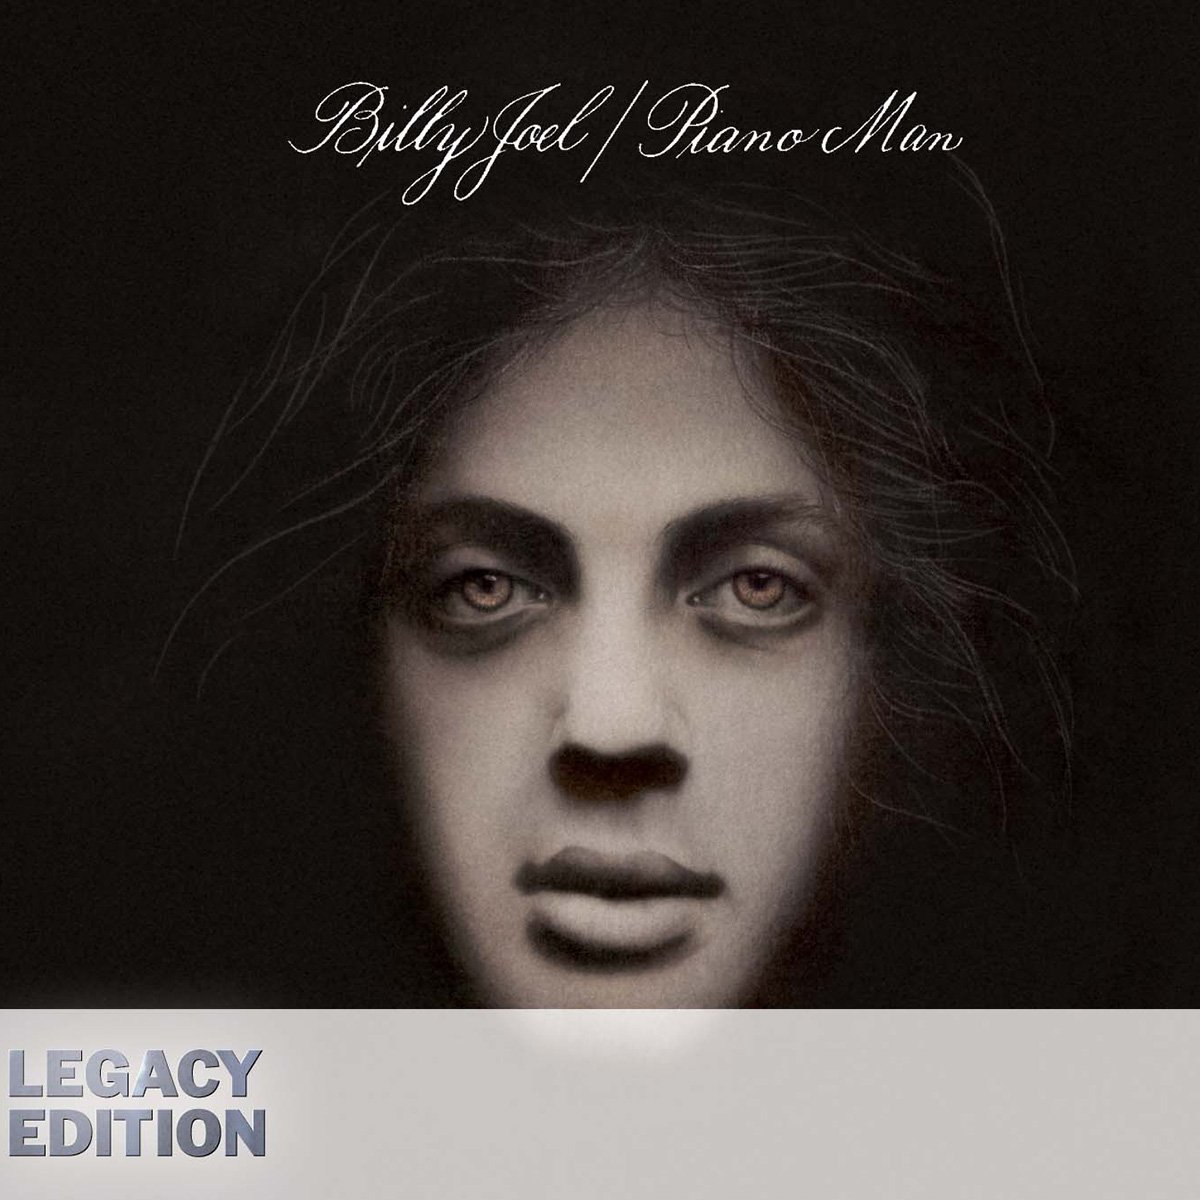 Piano Man (Legacy Edition) | Billy Joel Official Site Billy Joel Piano Man Legacy Edition